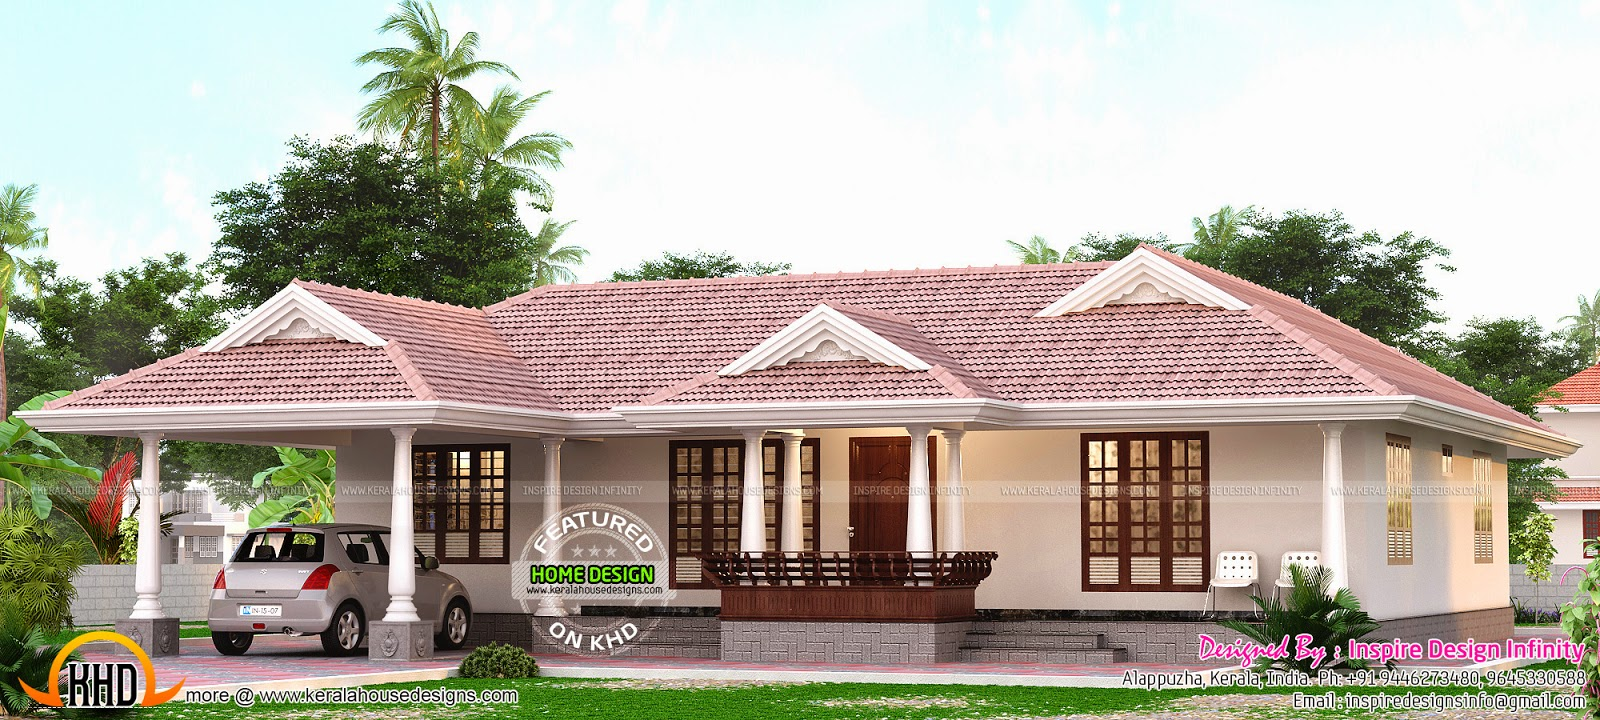 Kerala model single storied home kerala home design and for Kerala house photos